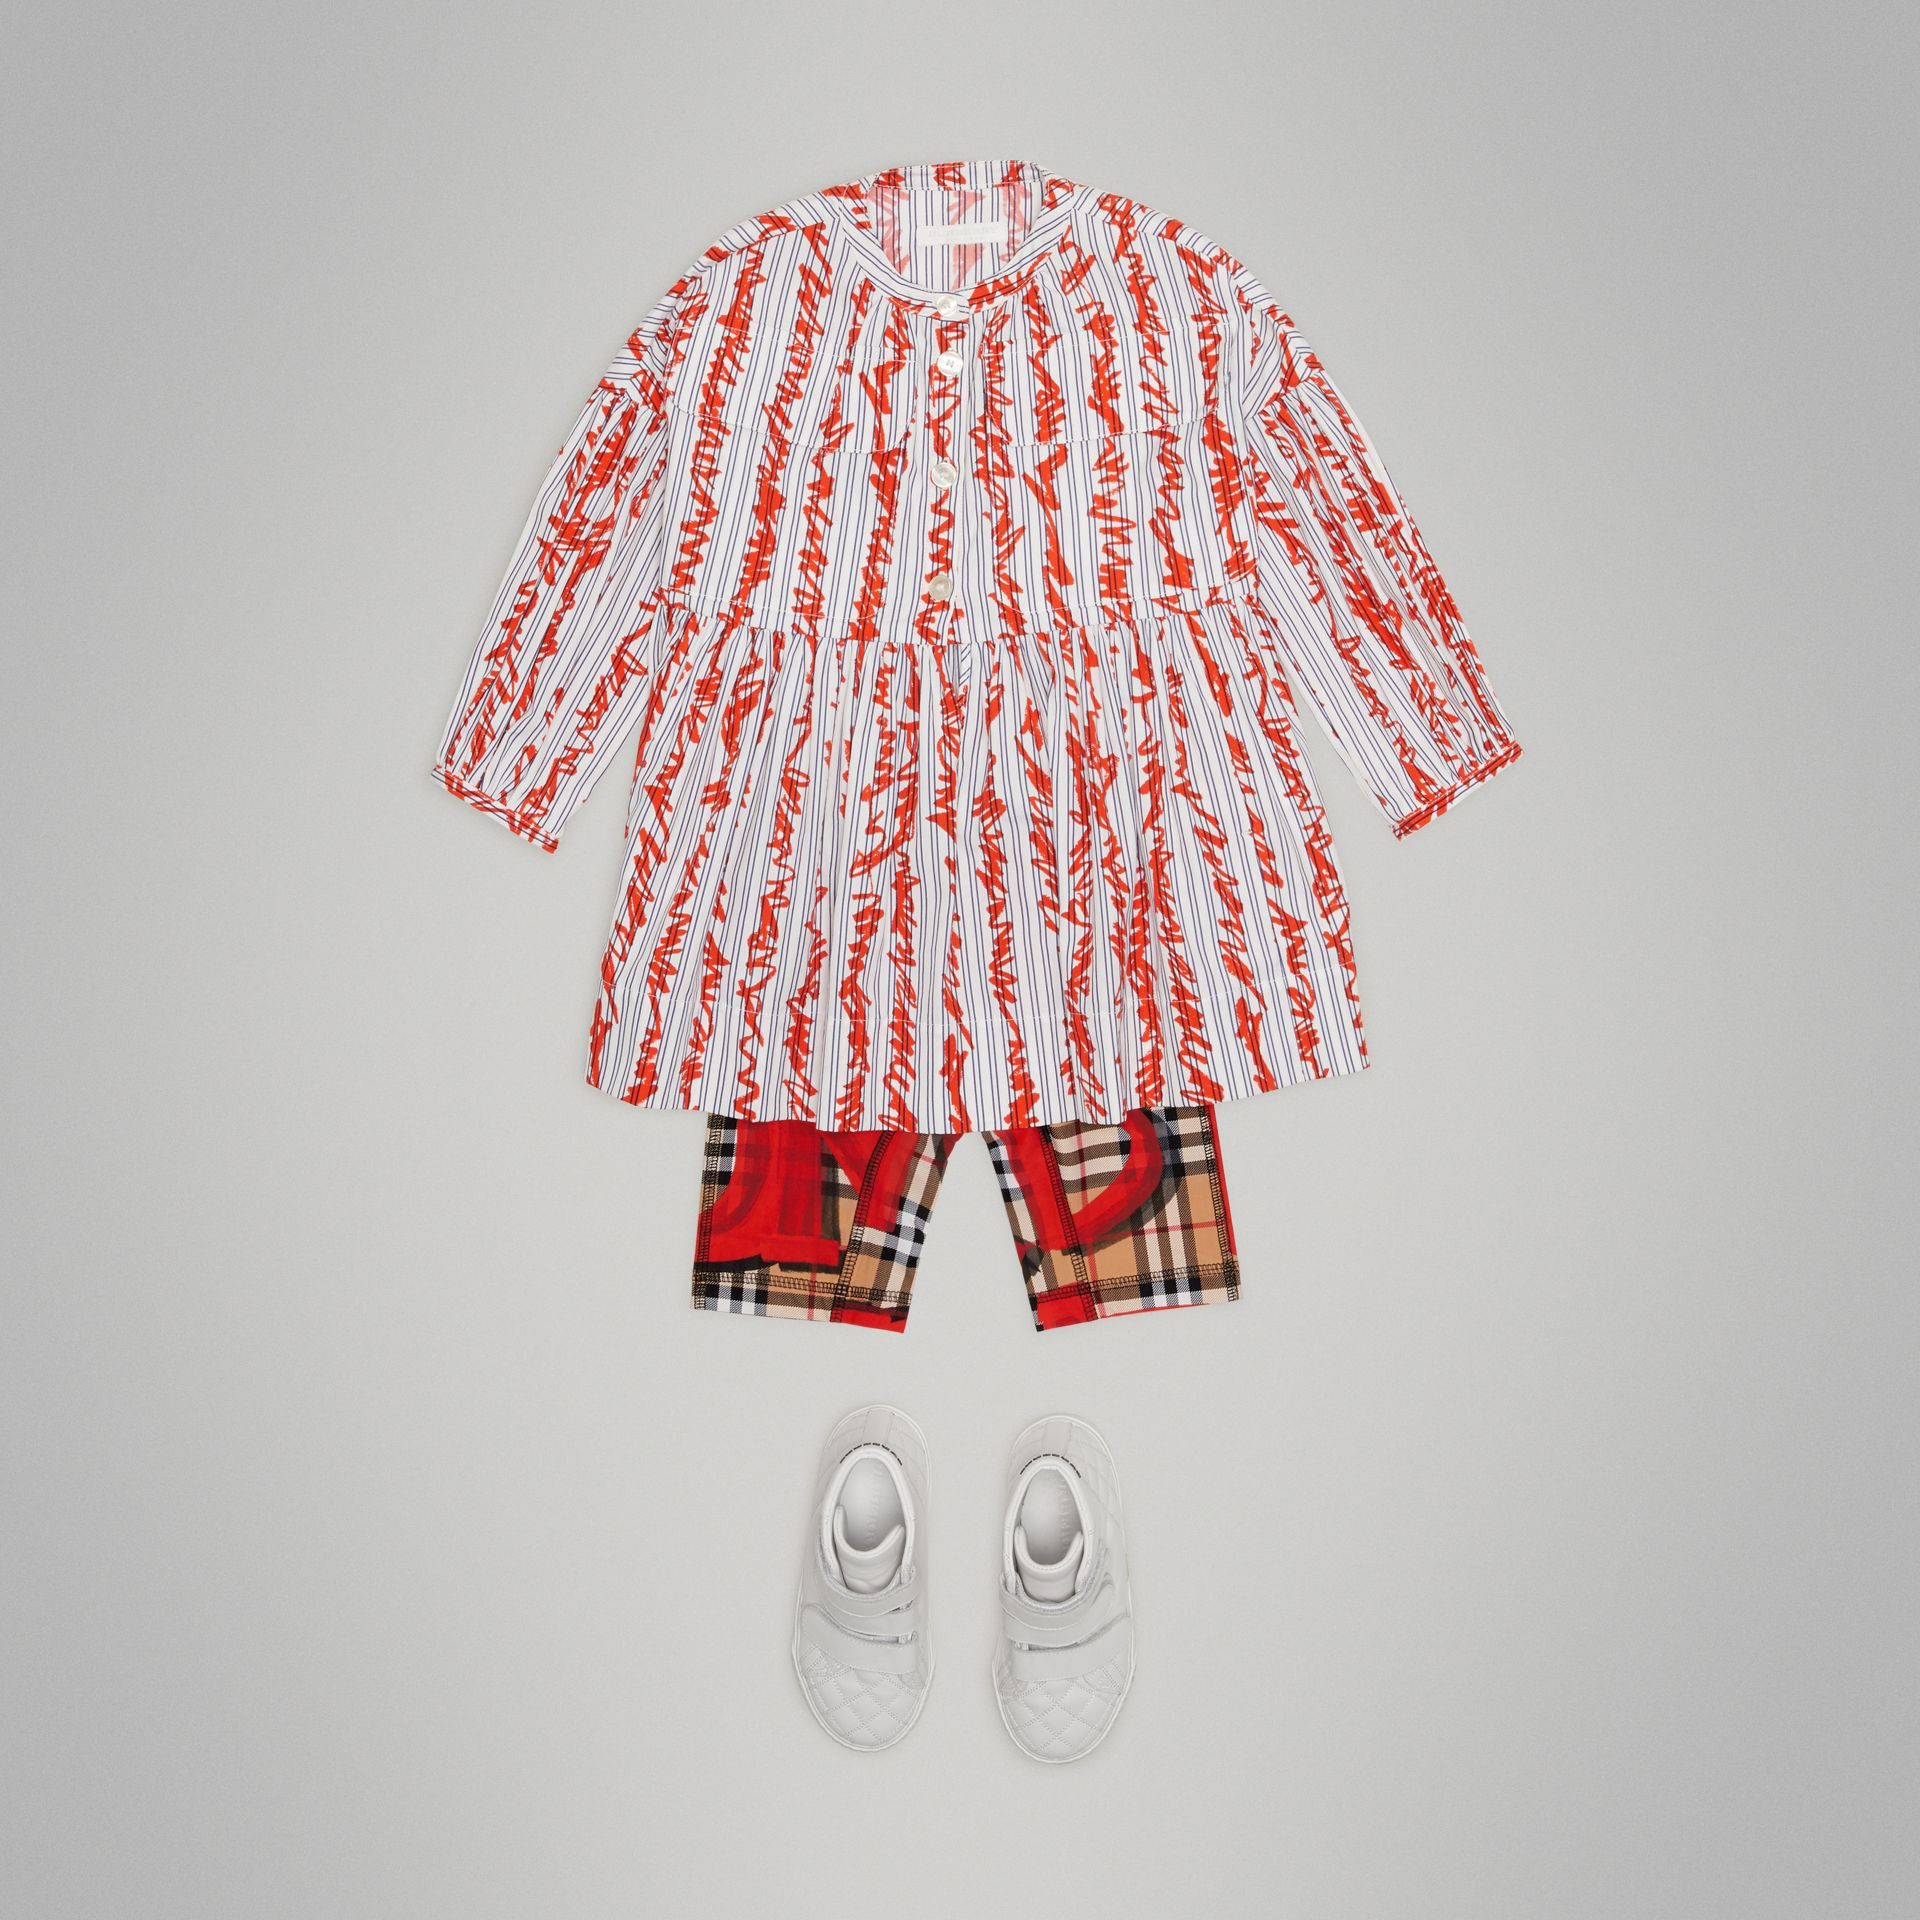 Graffiti Print Vintage Check Stretch Jersey Shorts in Bright Red | Burberry Australia - gallery image 2